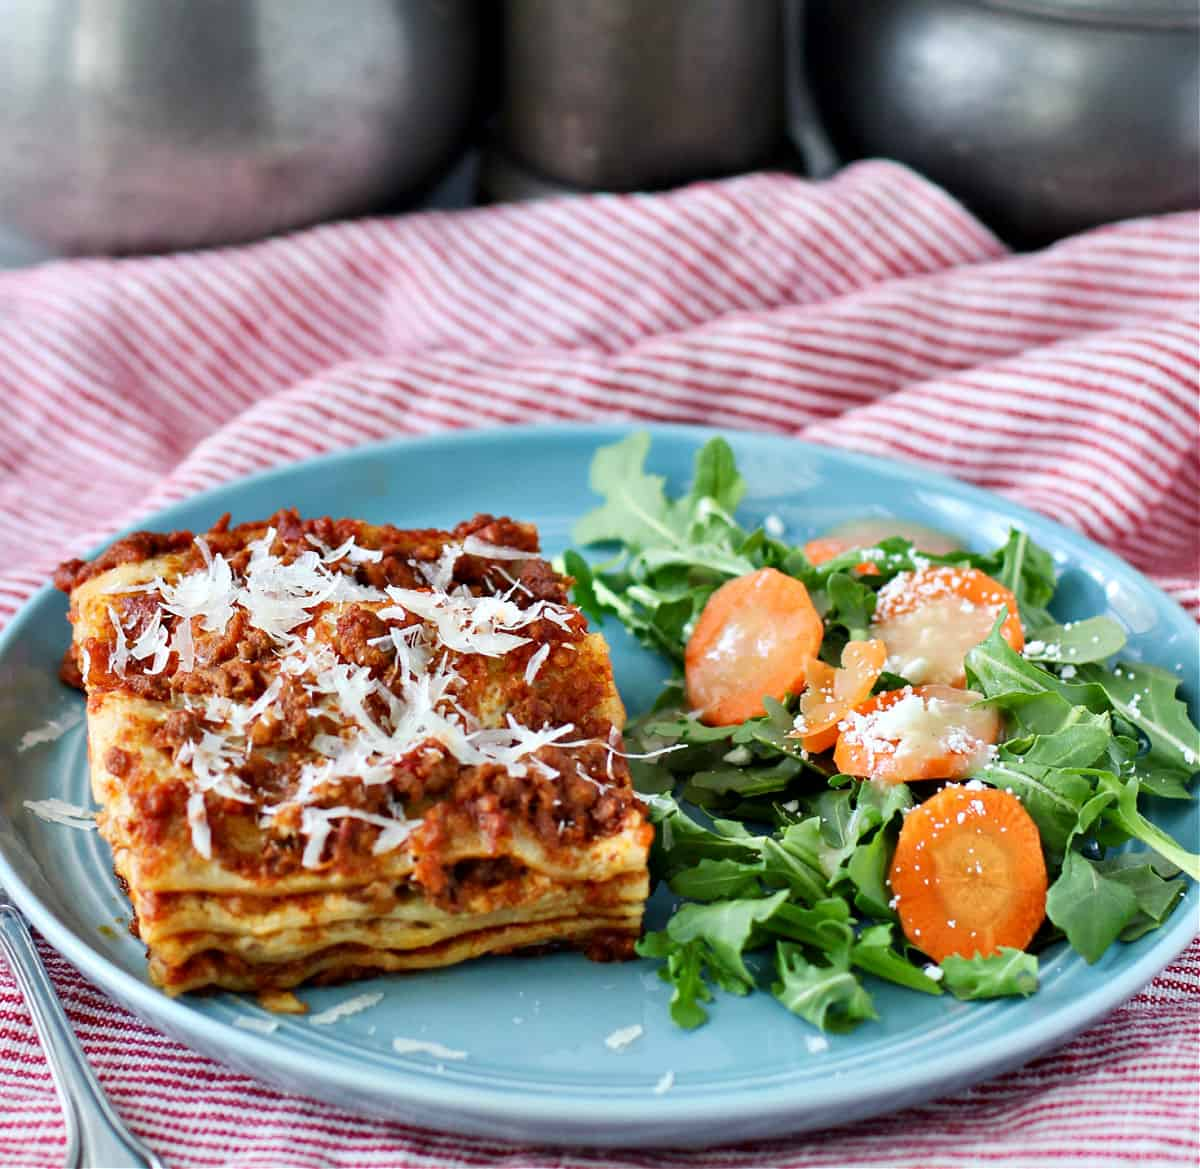 Lasagna Bolognese on a plate